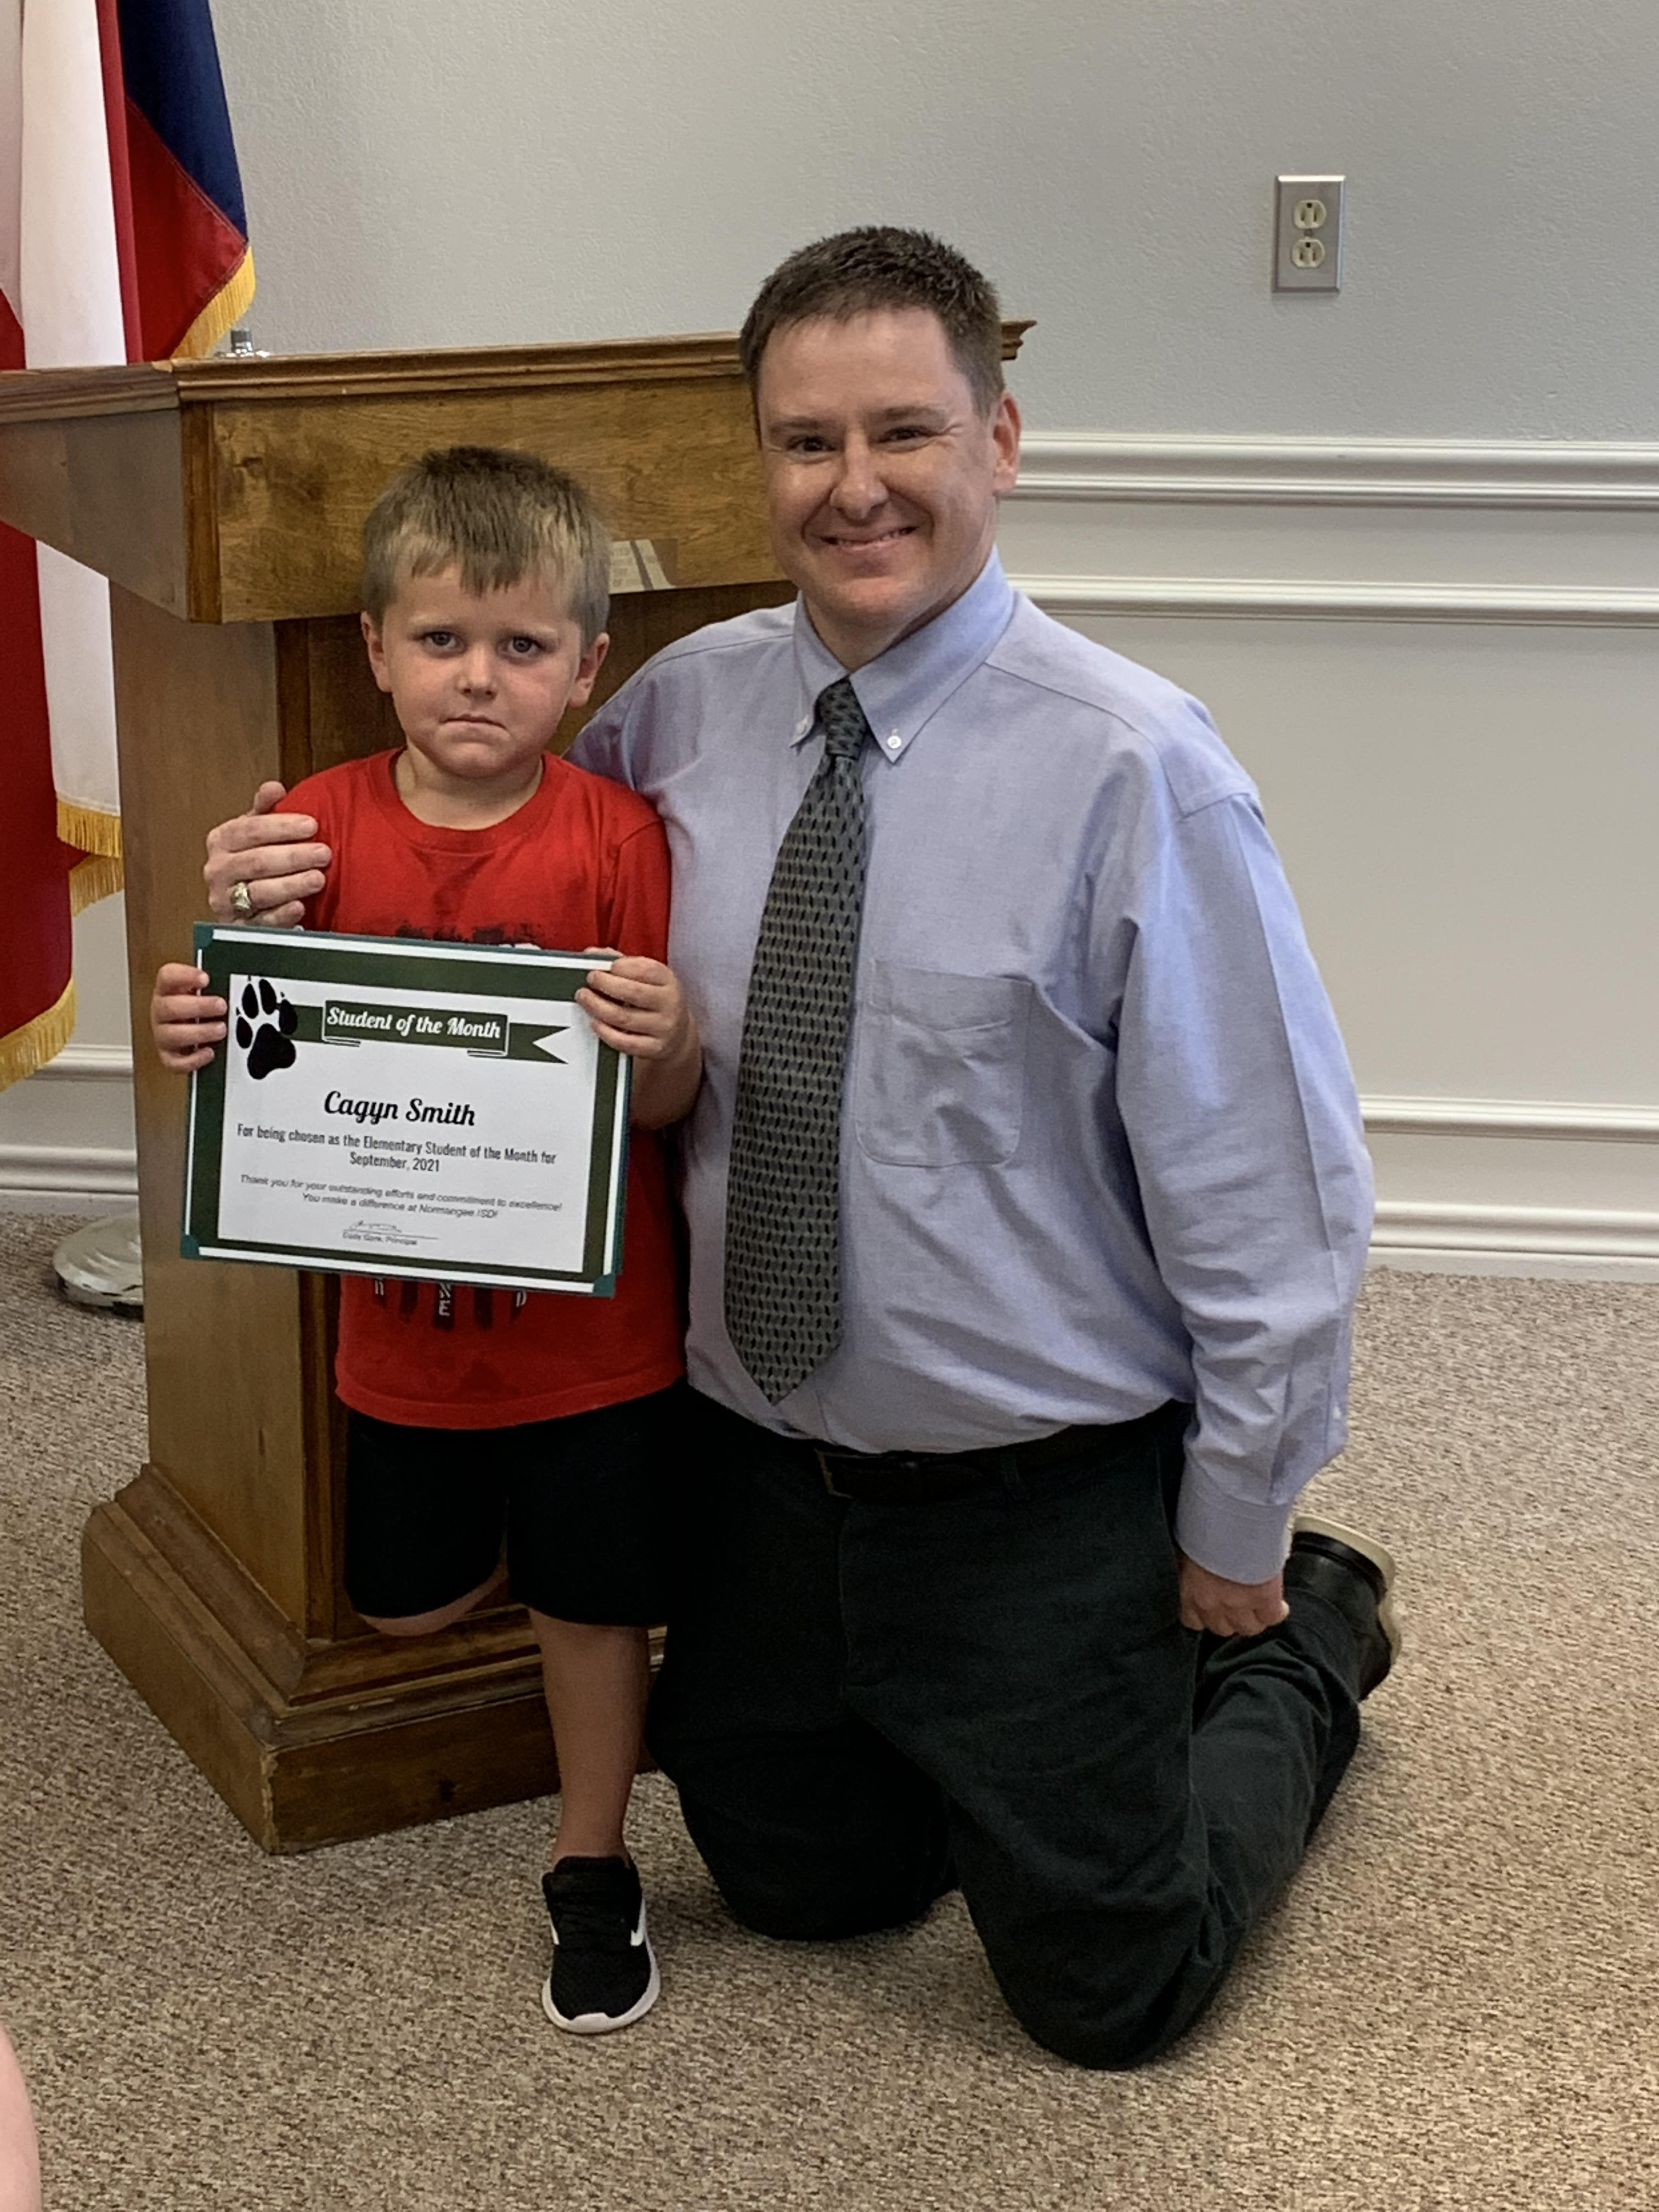 Cagyn Student of the Month